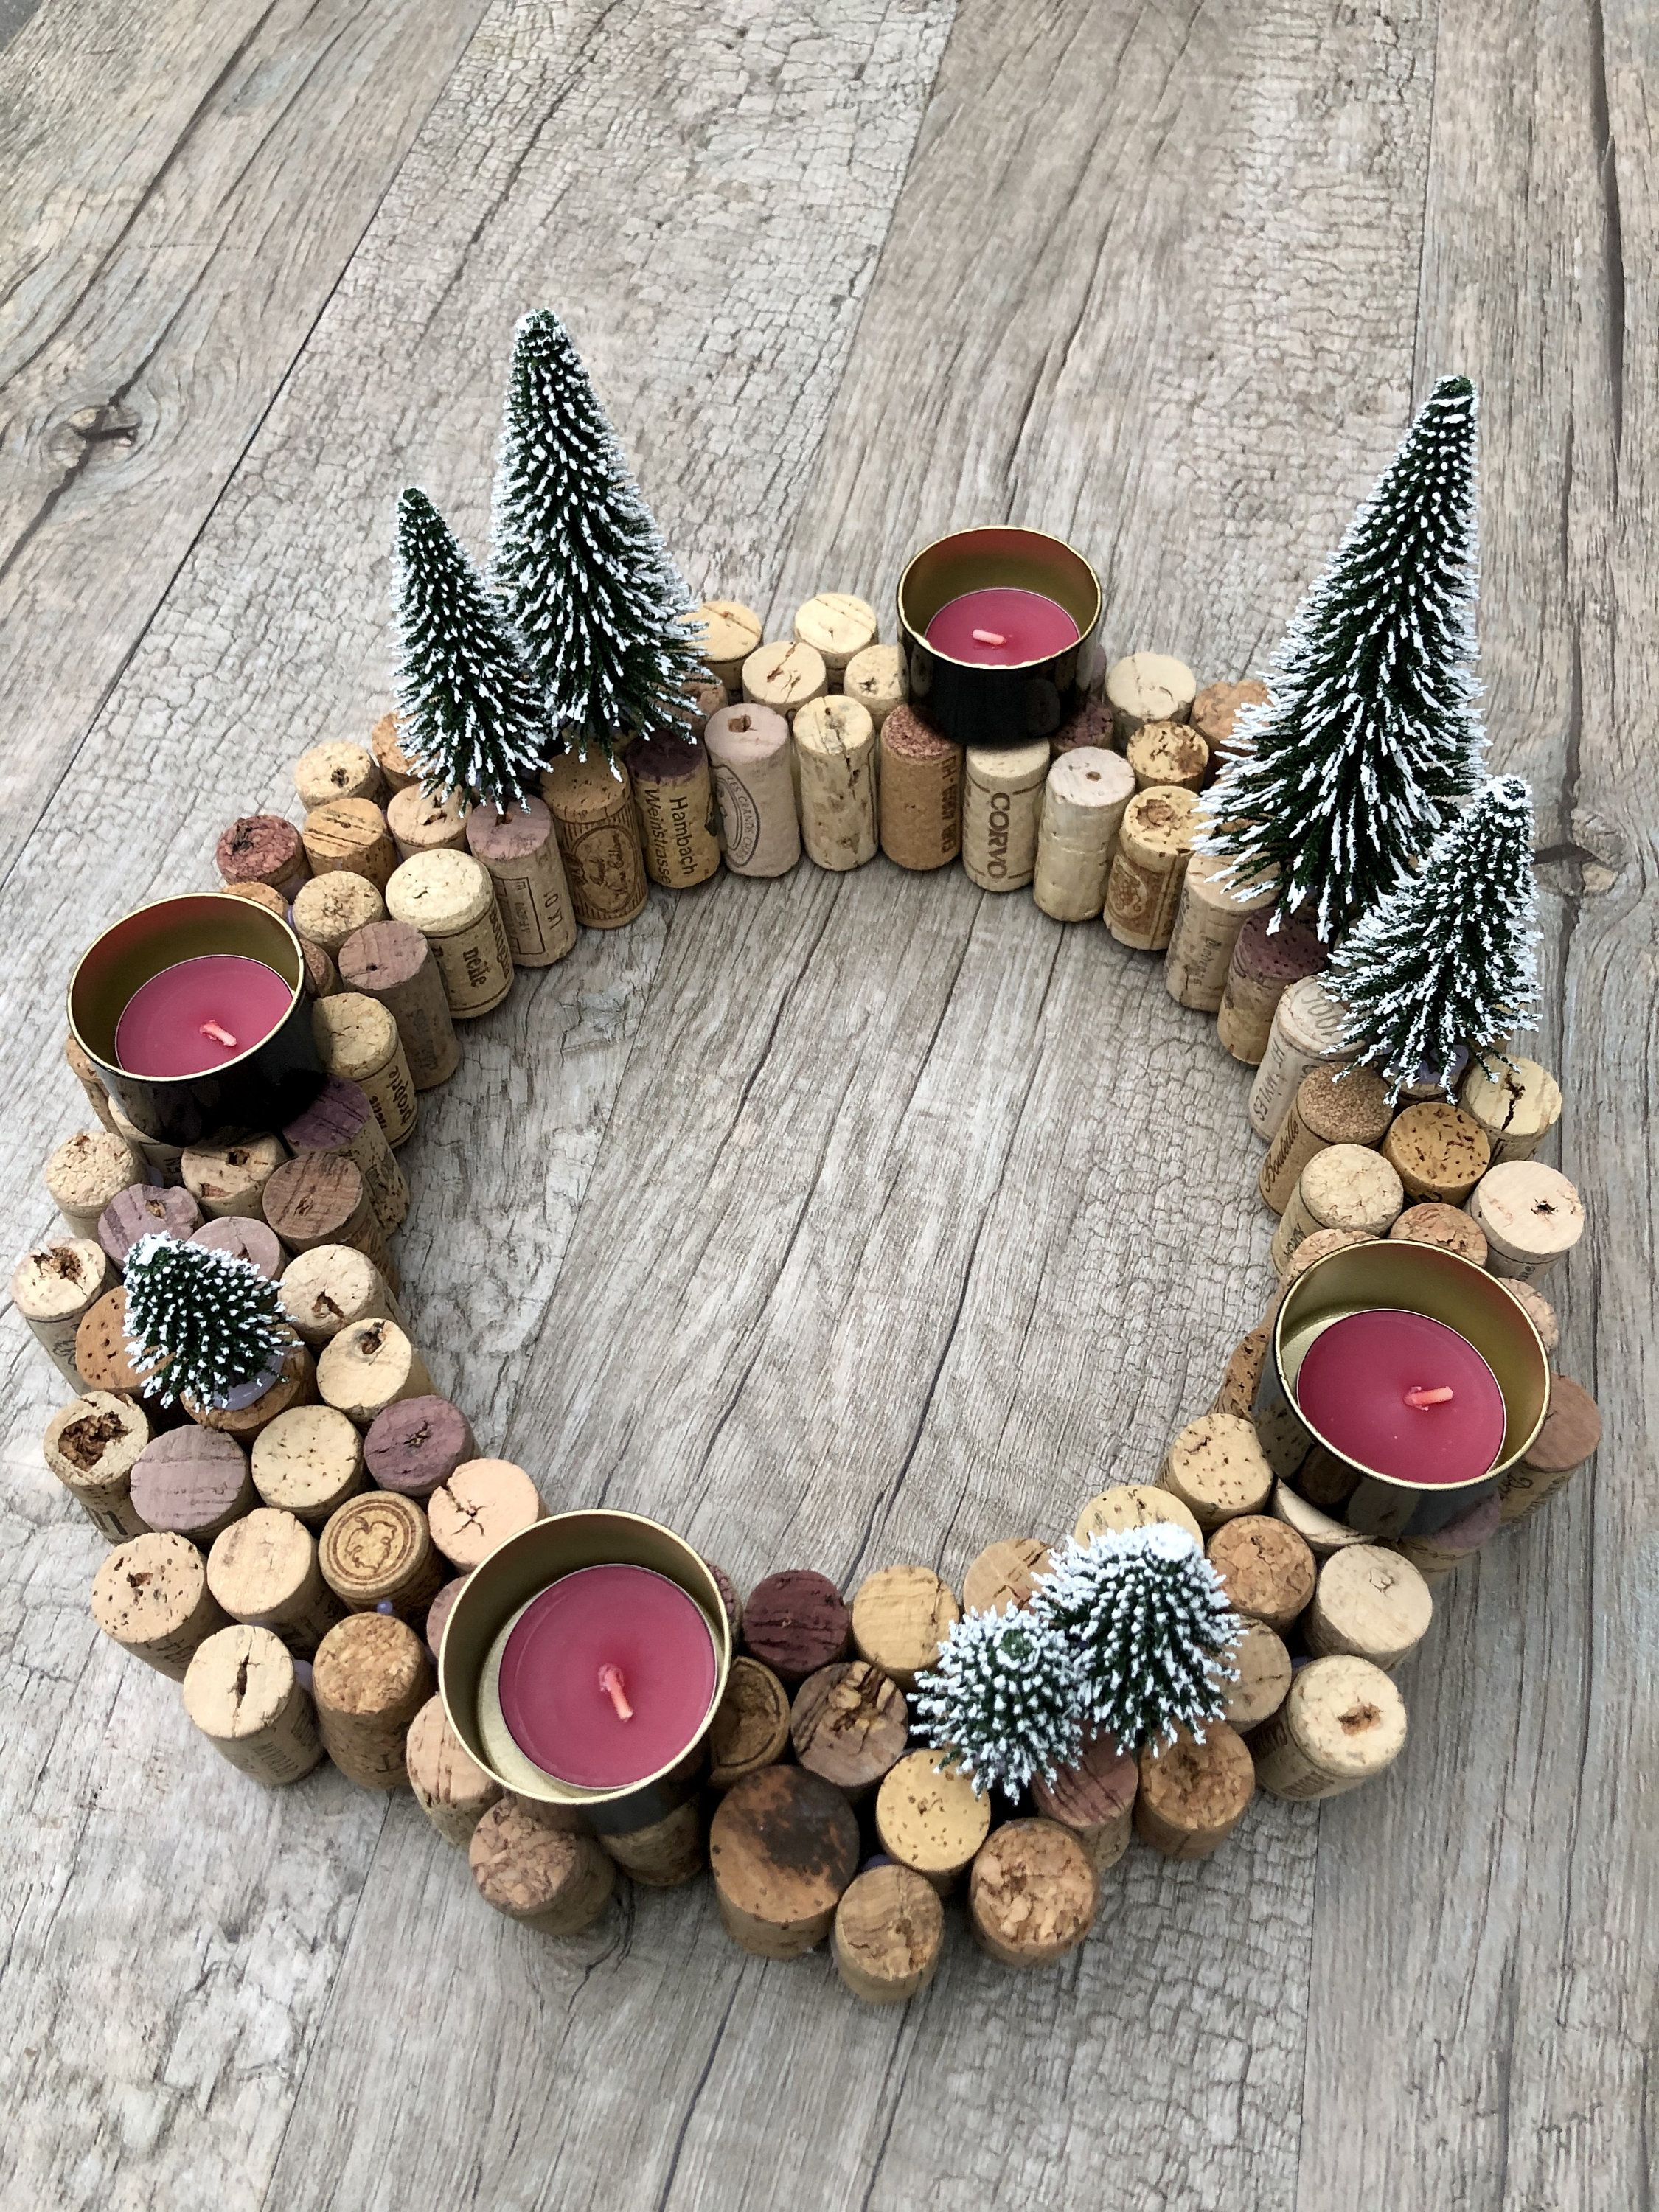 Upcycling advent wreath made of cork